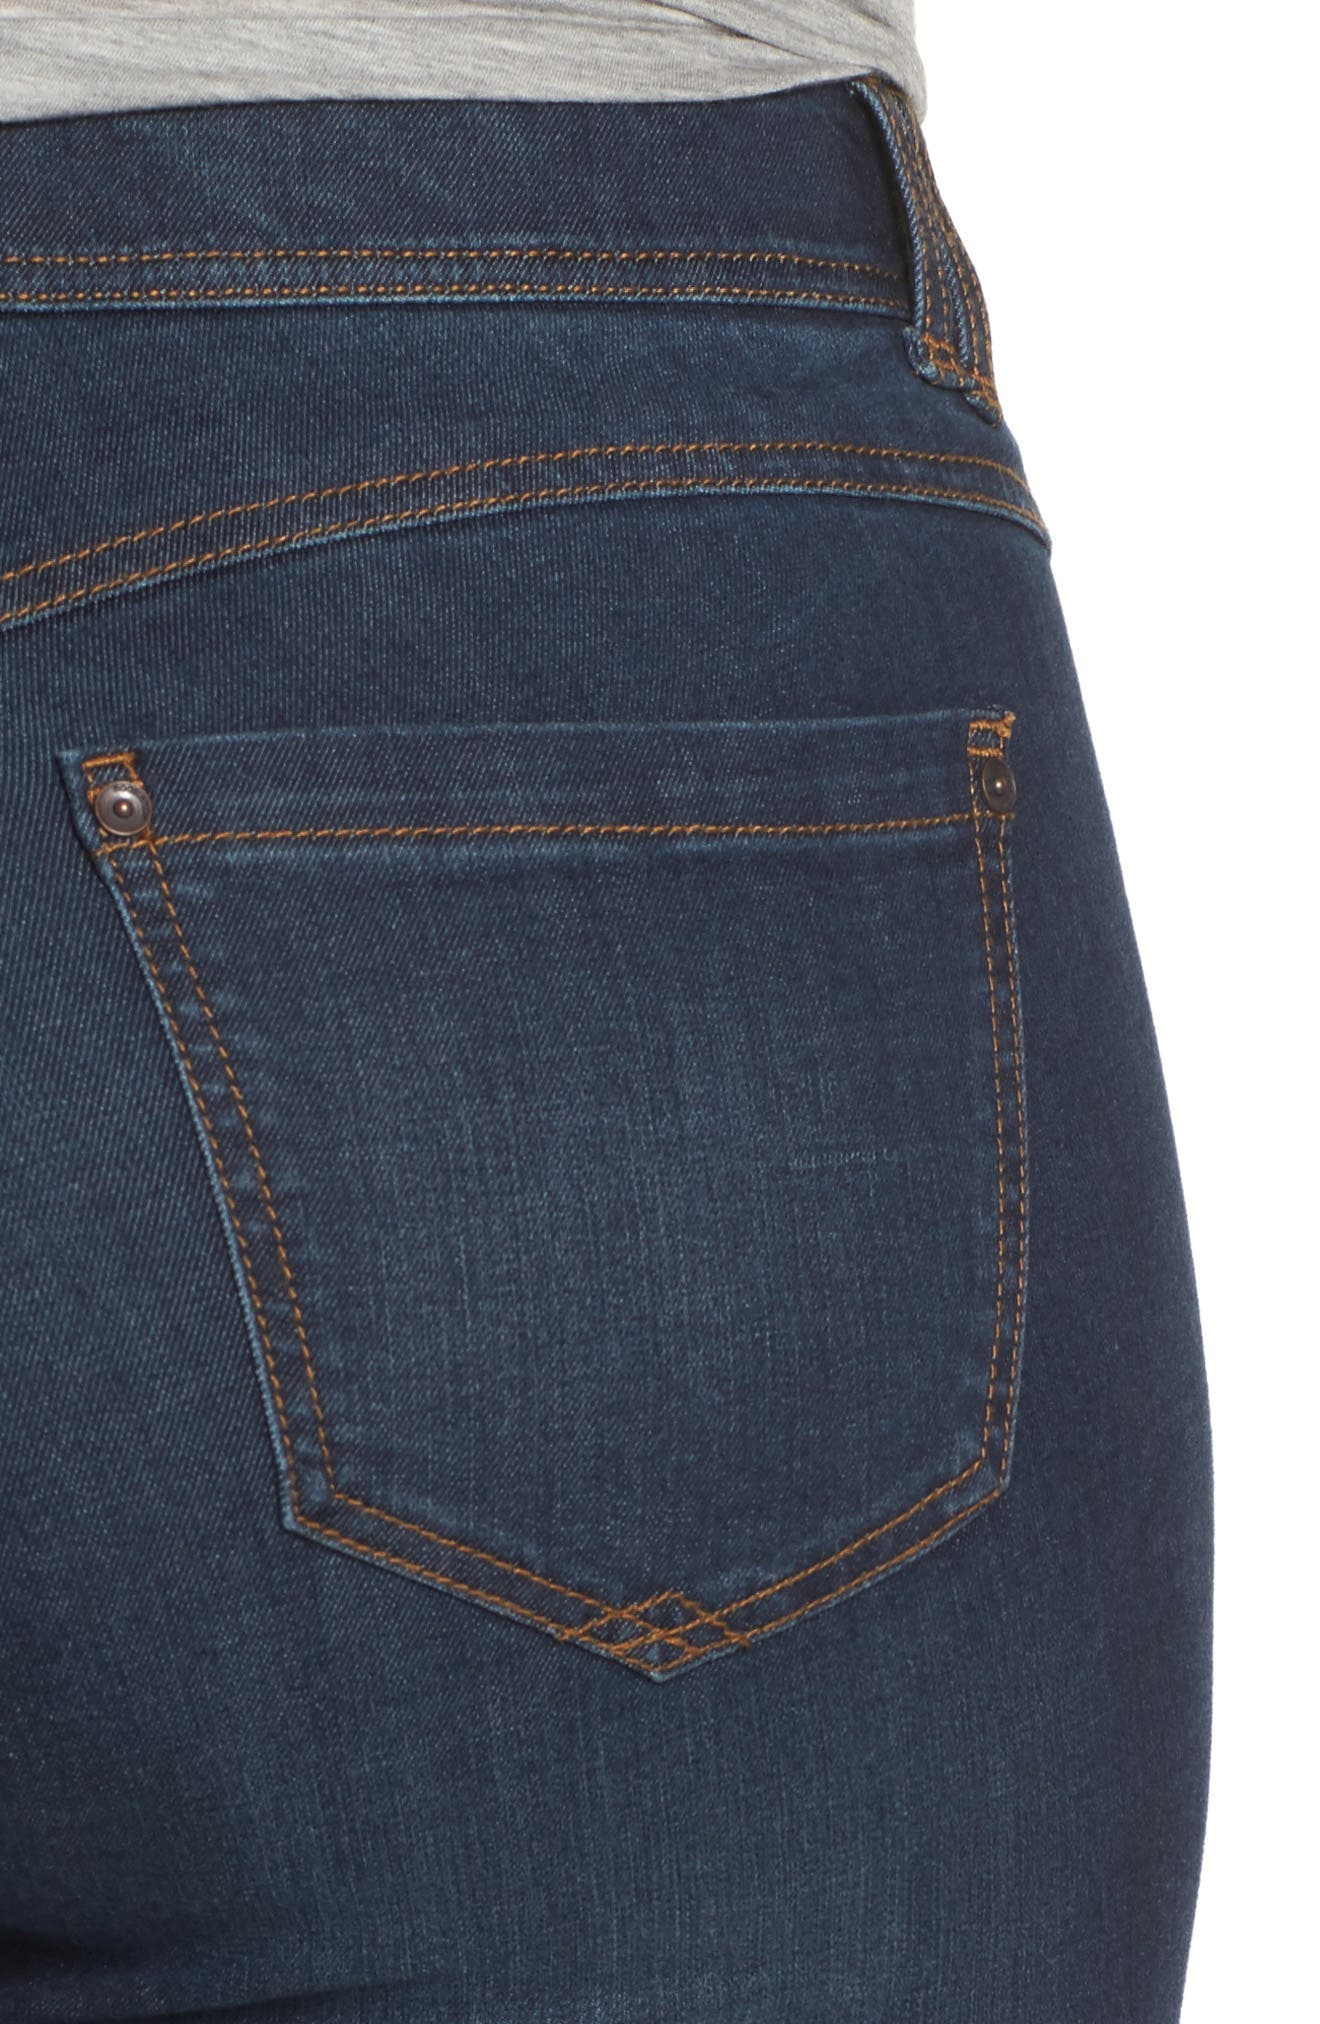 Ab-solution Itty Bitty Bootcut Jeans,                             Alternate thumbnail 4, color,                             420